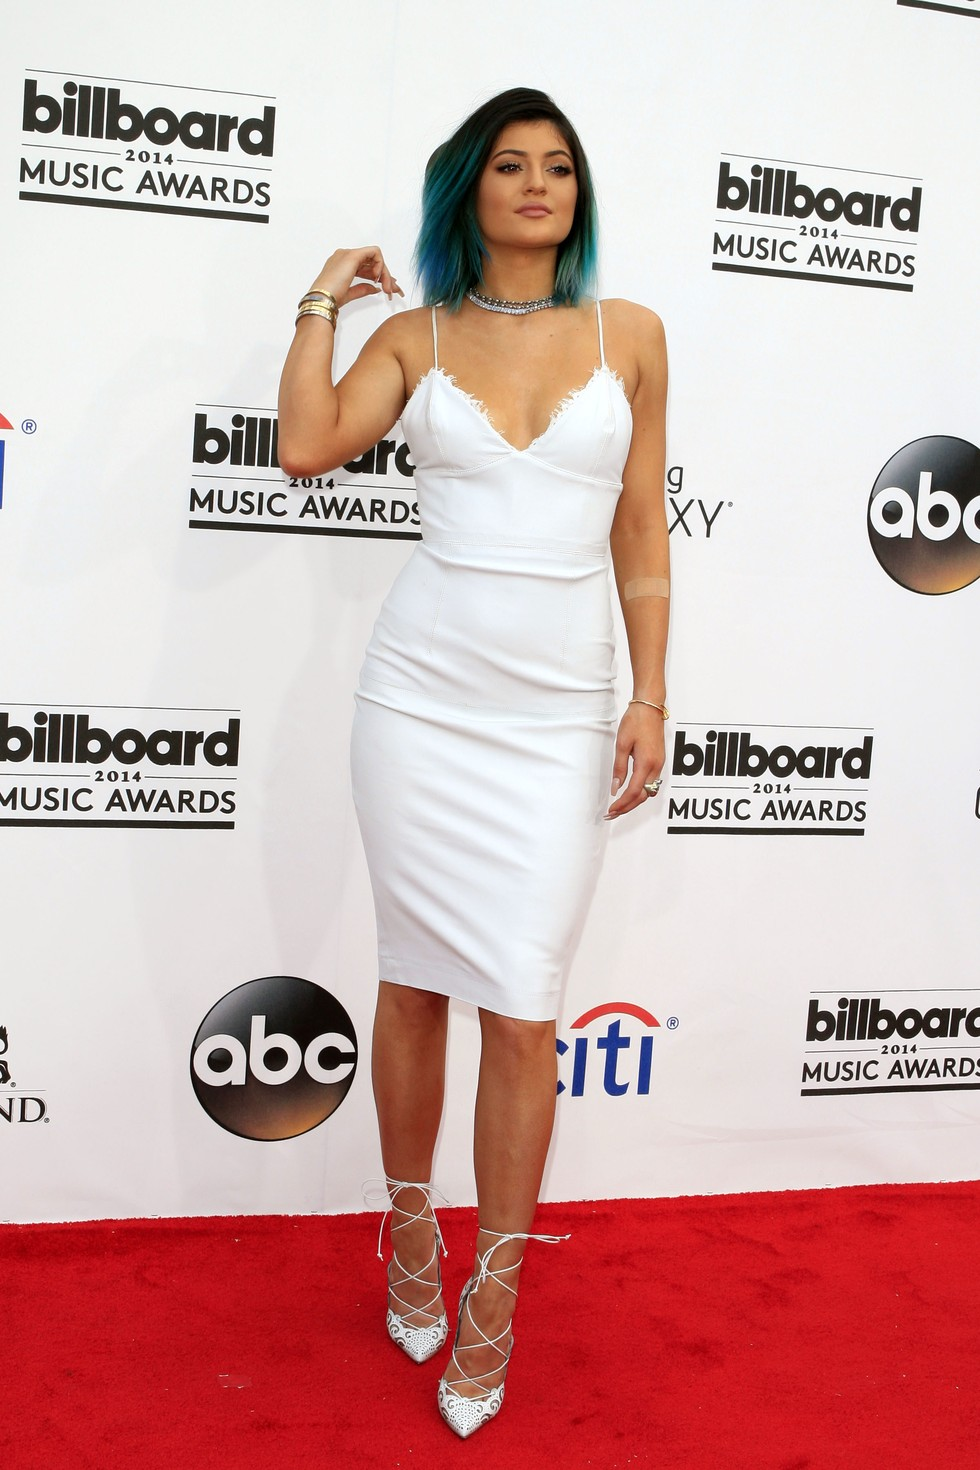 Billboard Awards